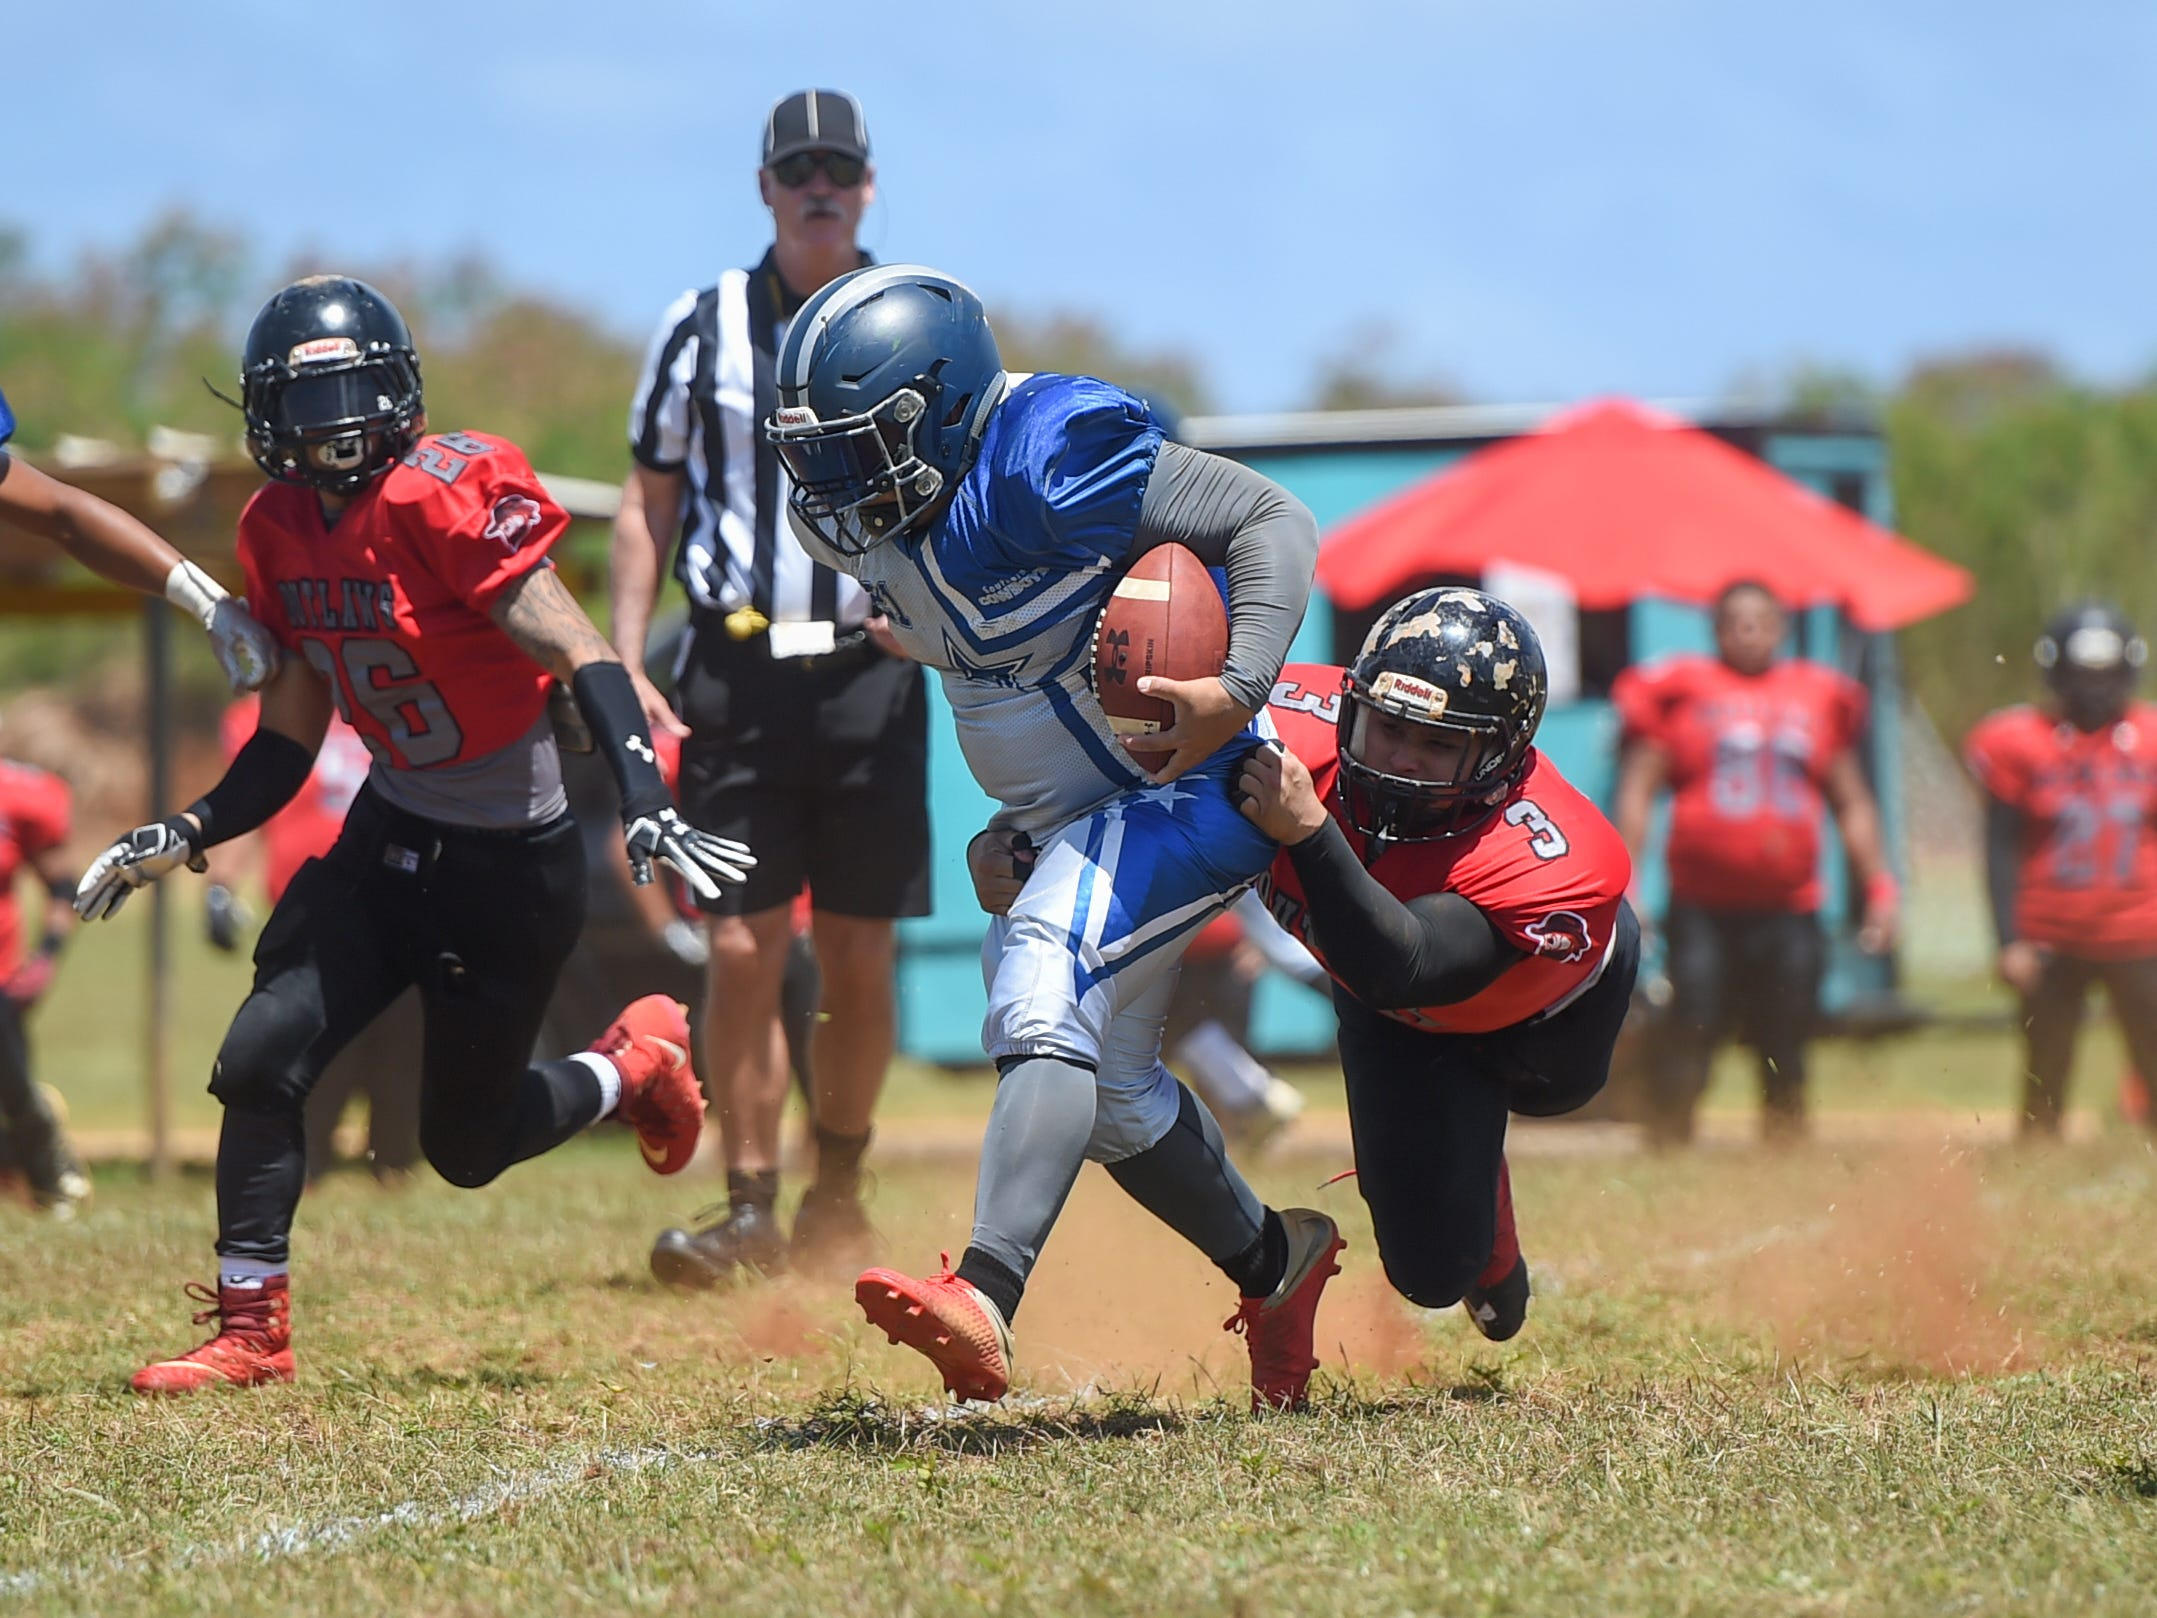 Outlaws player Frankie Fernandez (3) attempts a tackle during a Budweiser Guahan Varsity Football League game against the Southern Cowboys at Eagles Field in Mangilao, March 9, 2019.